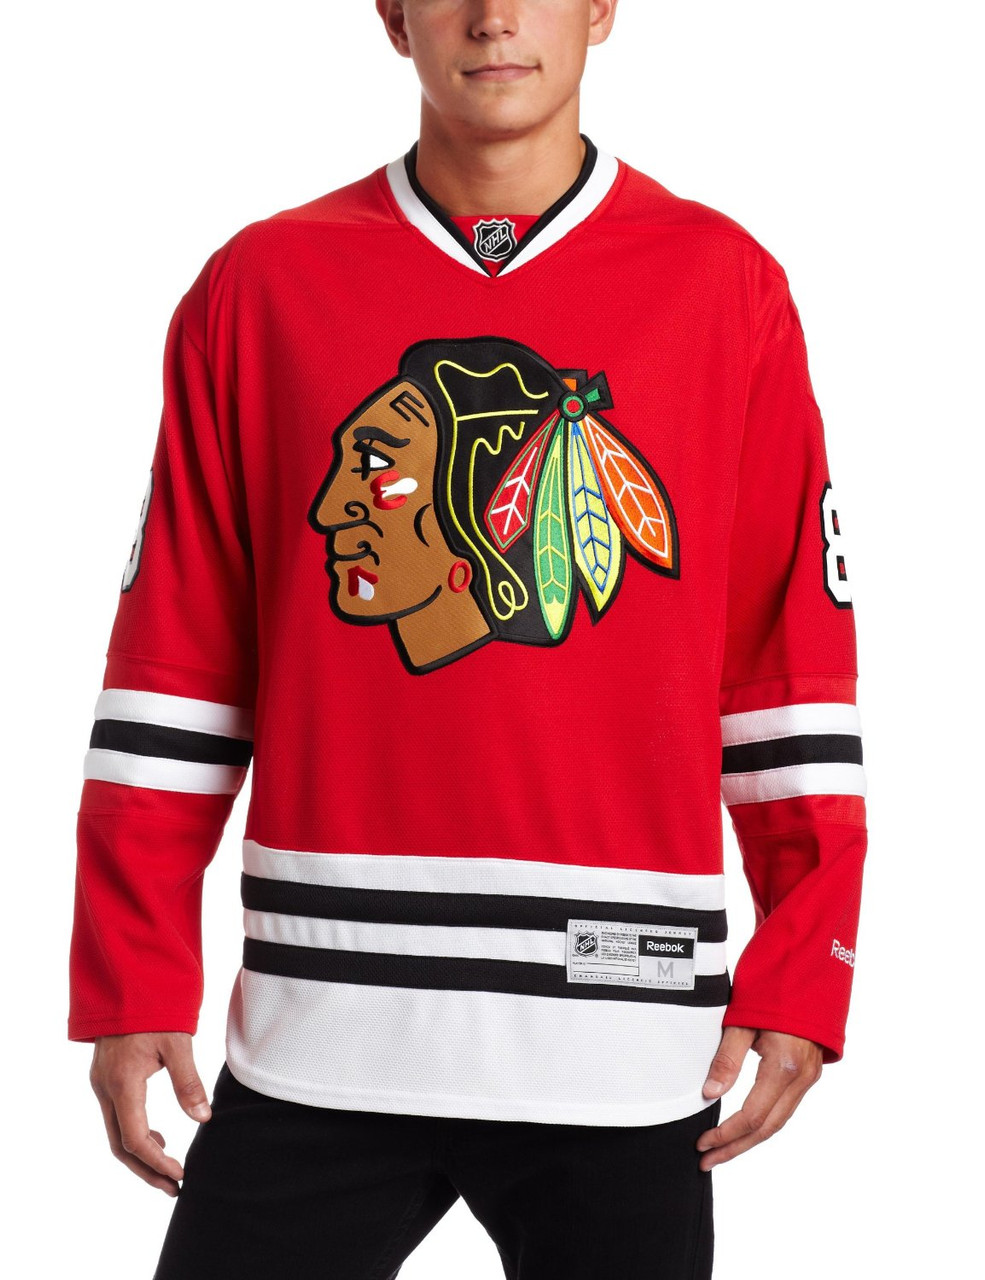 7017e00cccd Men's Adidas NHL Reebok Chicago Blackhawks Patrick Kane Premier Home Jersey  - Sieverts Sporting Goods